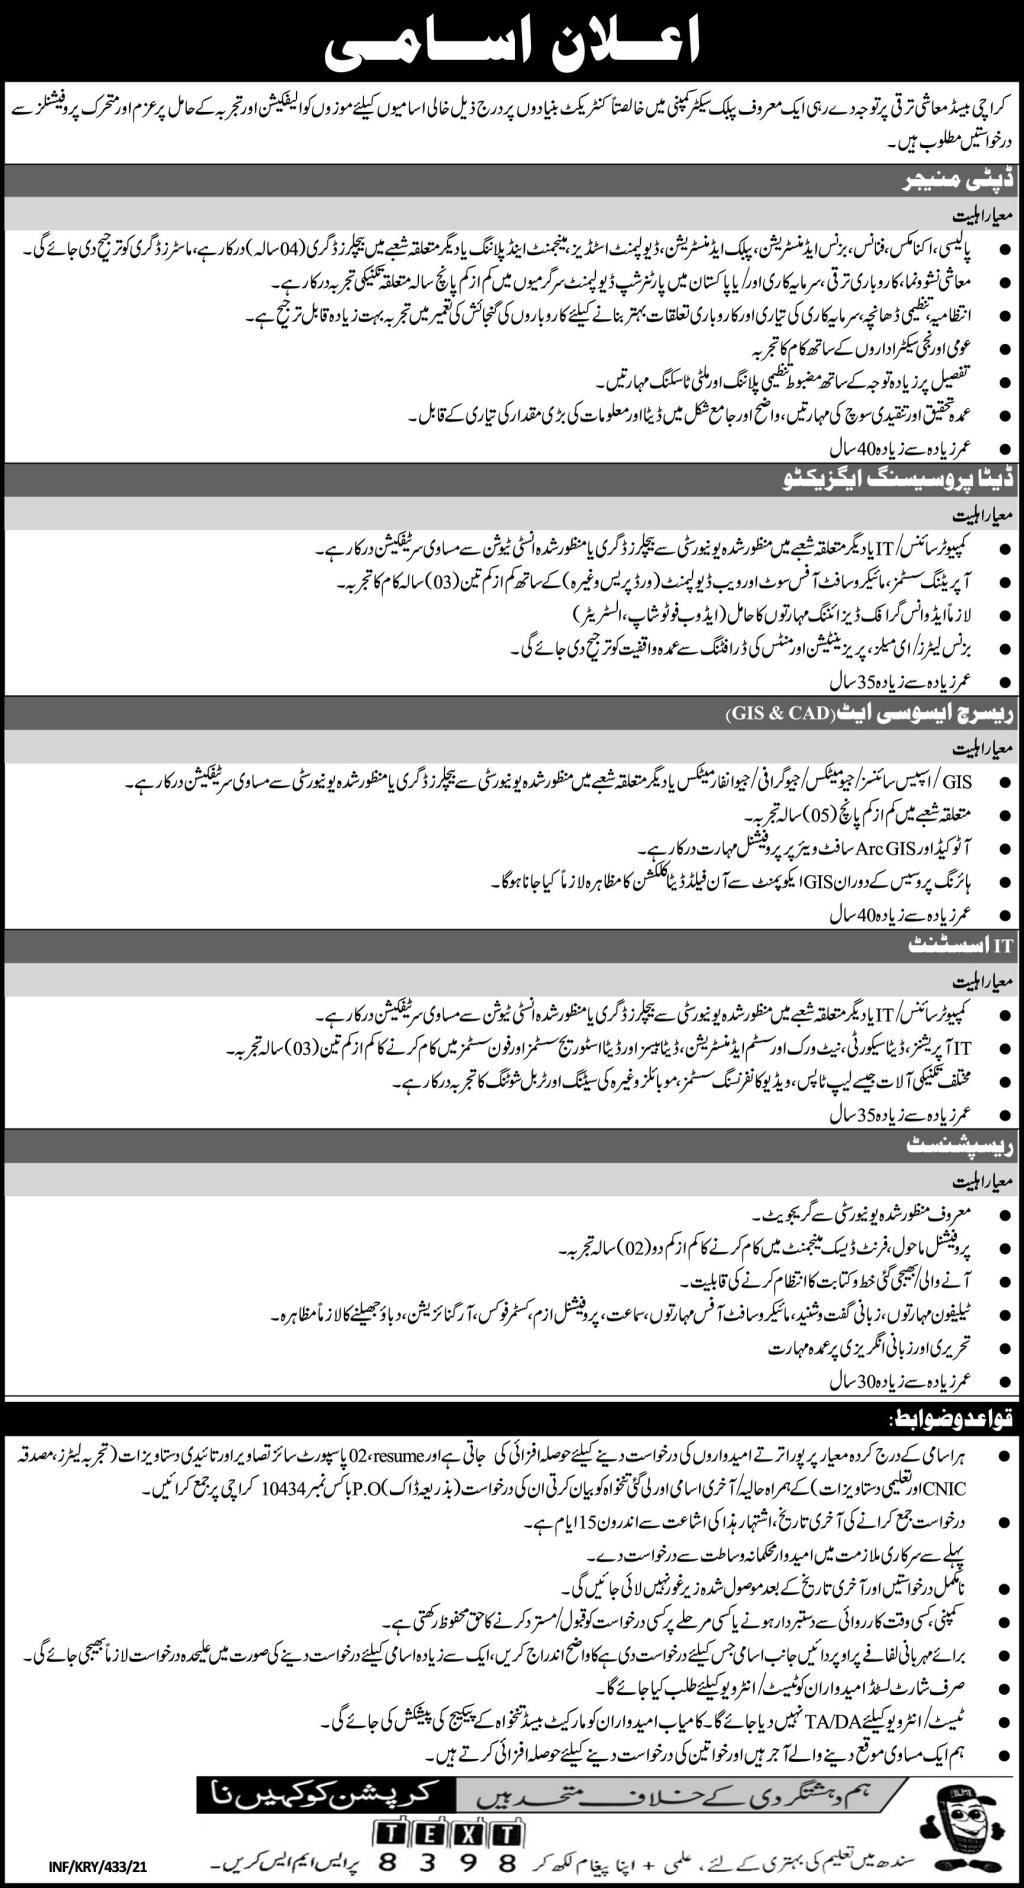 Public Service Jobs 2021 - Government and Public Administration Jobs - Public Service Jobs List - Working in the Public Sector